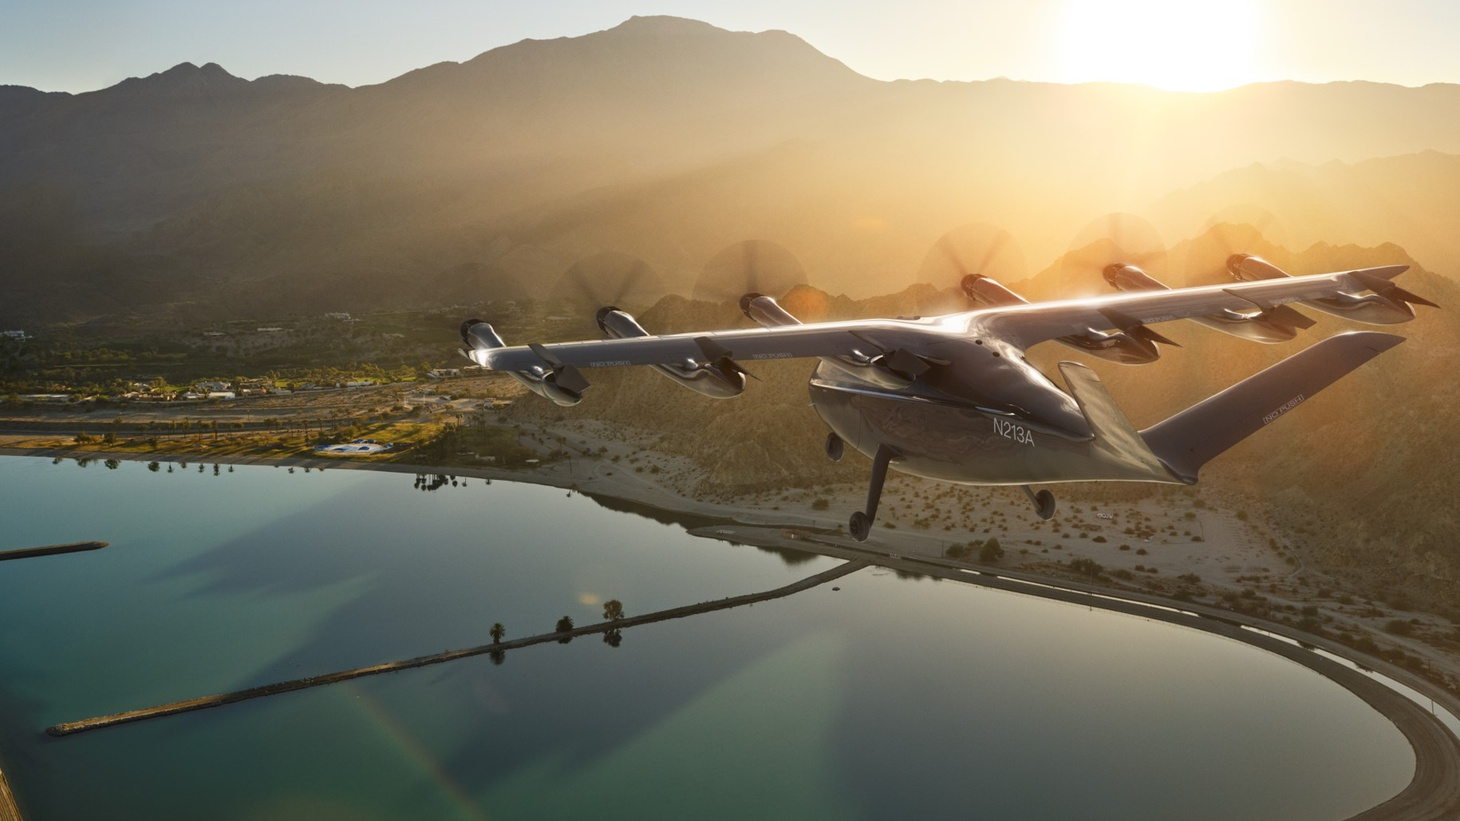 LA is partnering with a startup called Archer to bring flying cars to the city, though in actual projections of the future, the skies are a lot busier. The roads may still be jammed too.